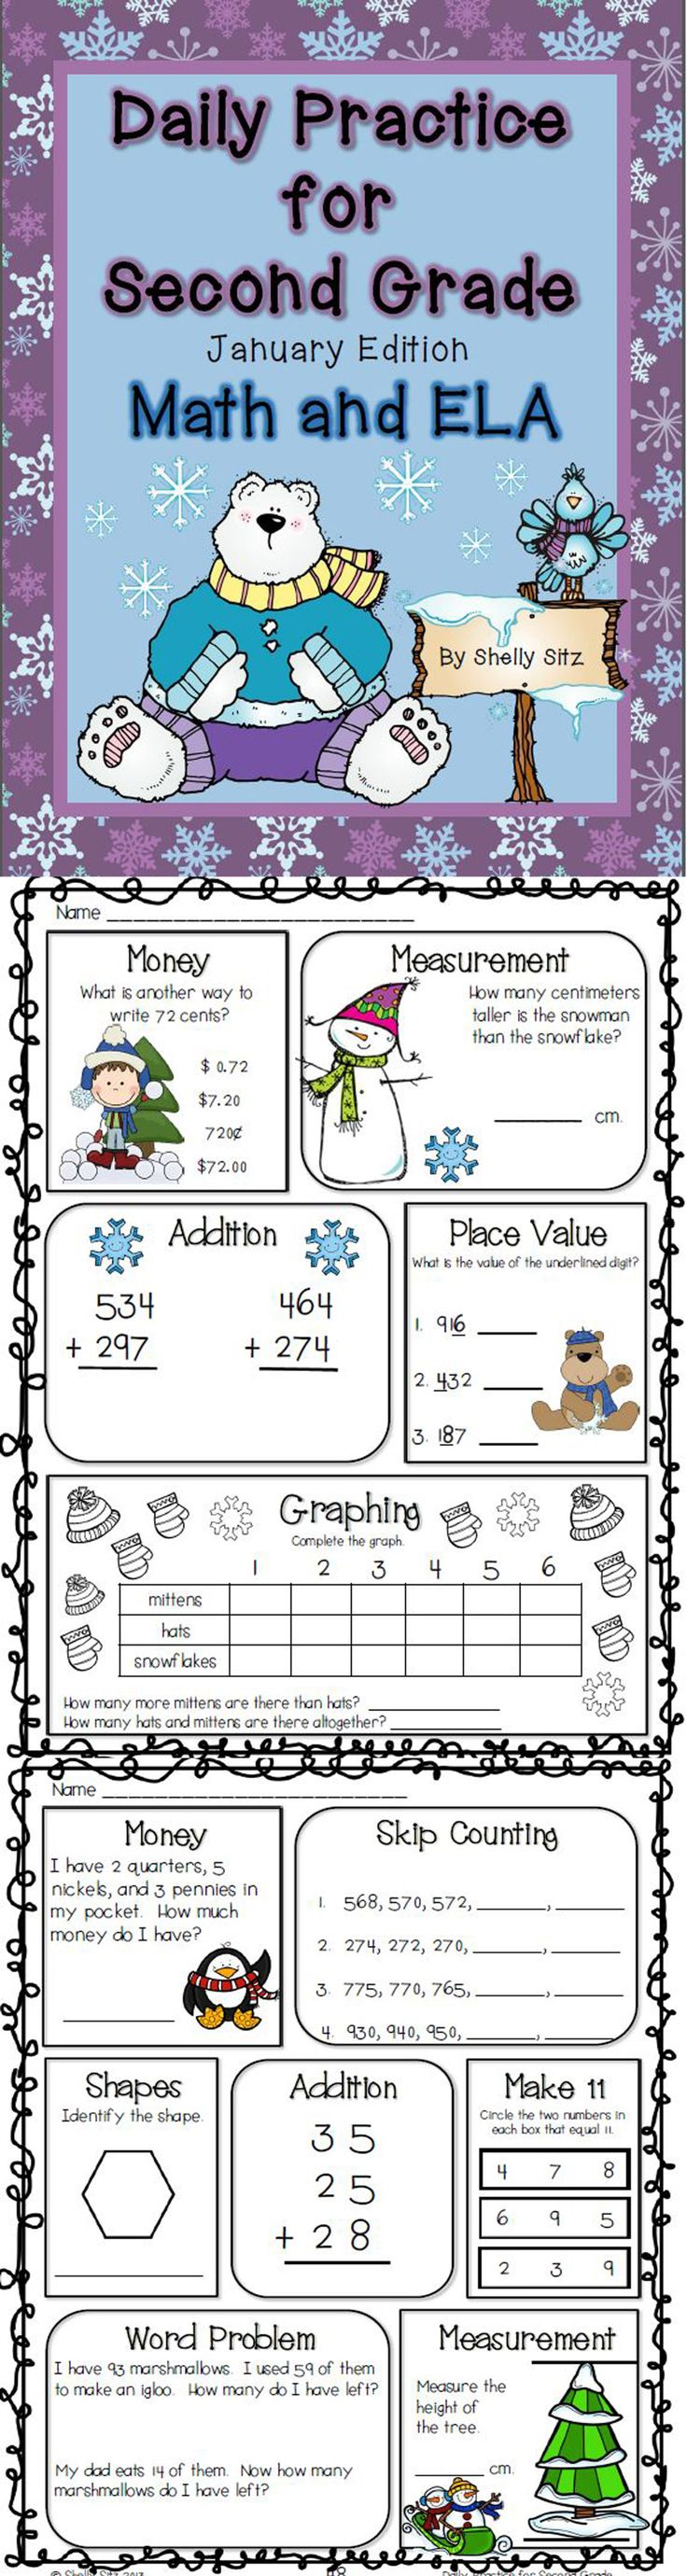 Word problems and geometry winter themed worksheets for 2nd grade